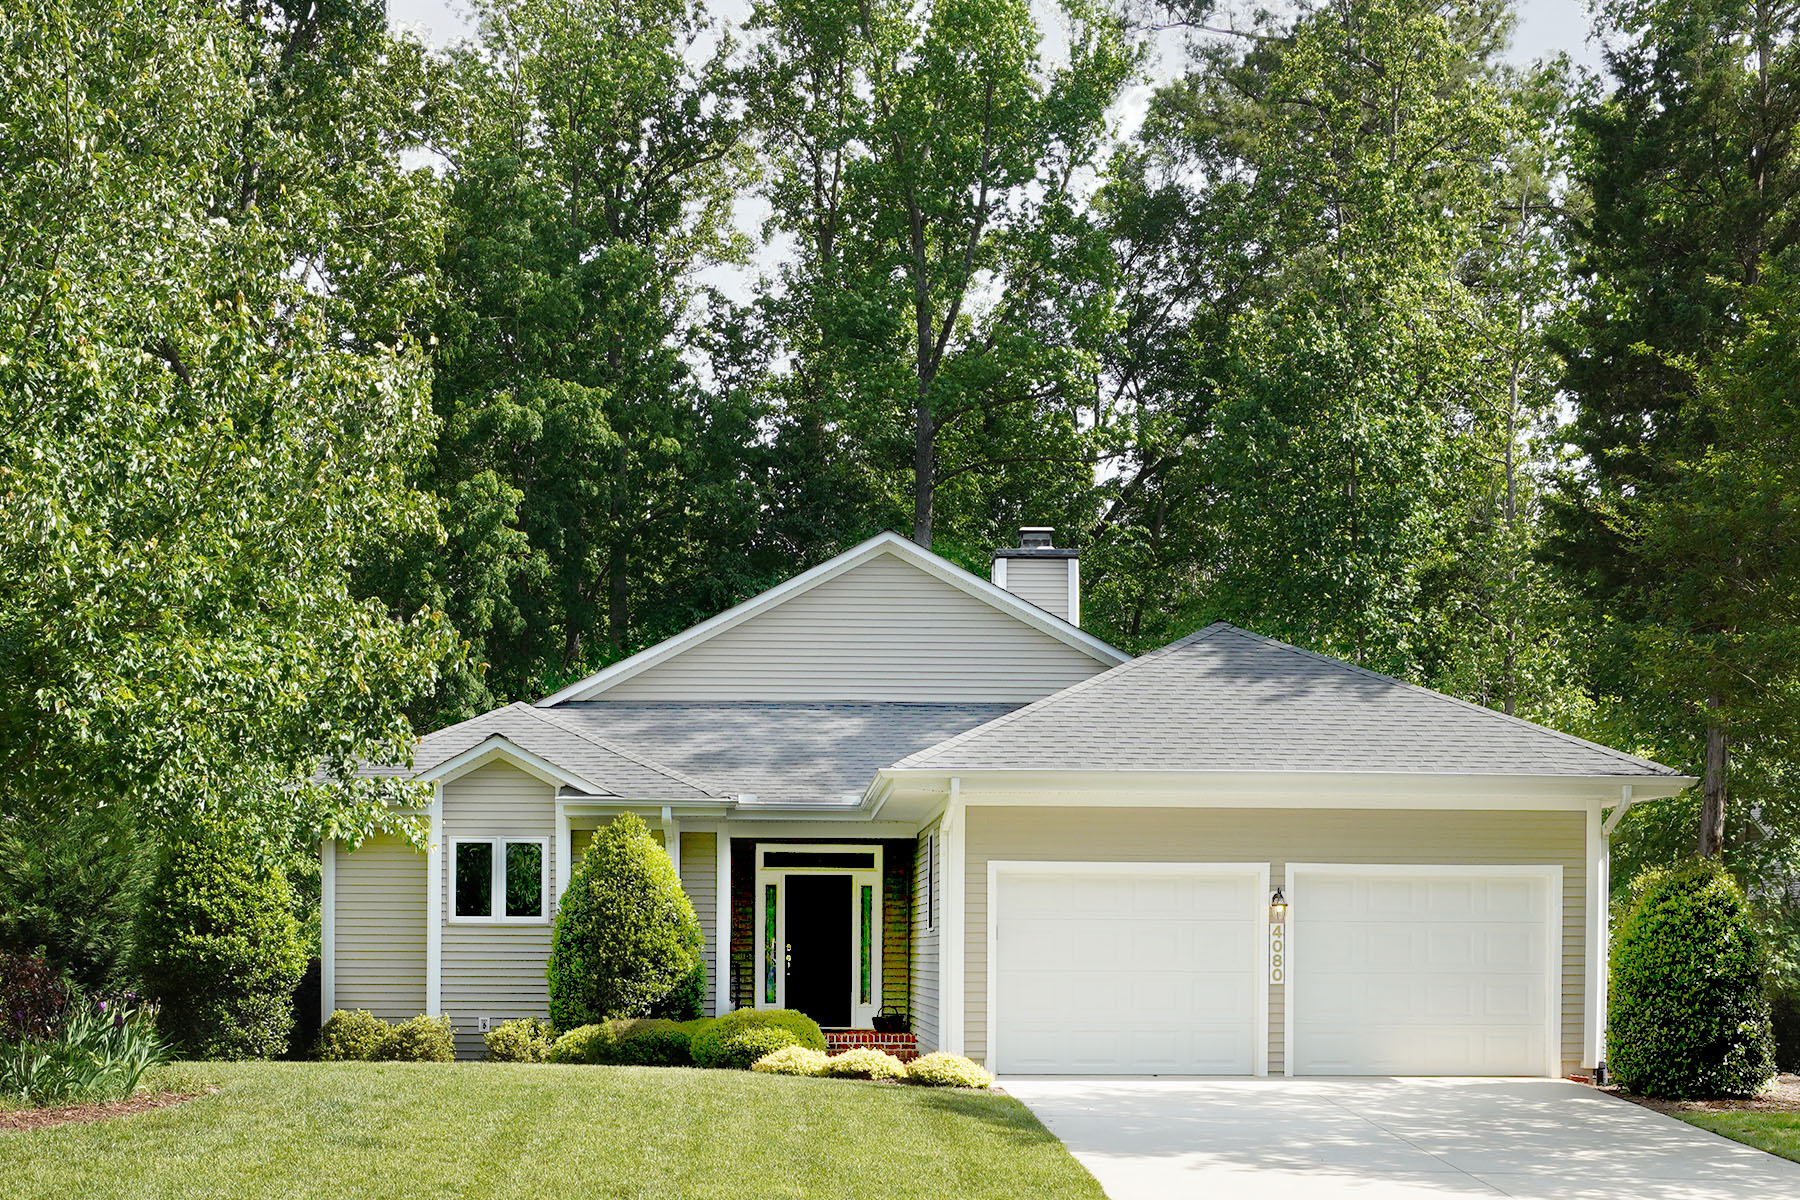 4080 Woodleigh in Fearrington Village - home exterior